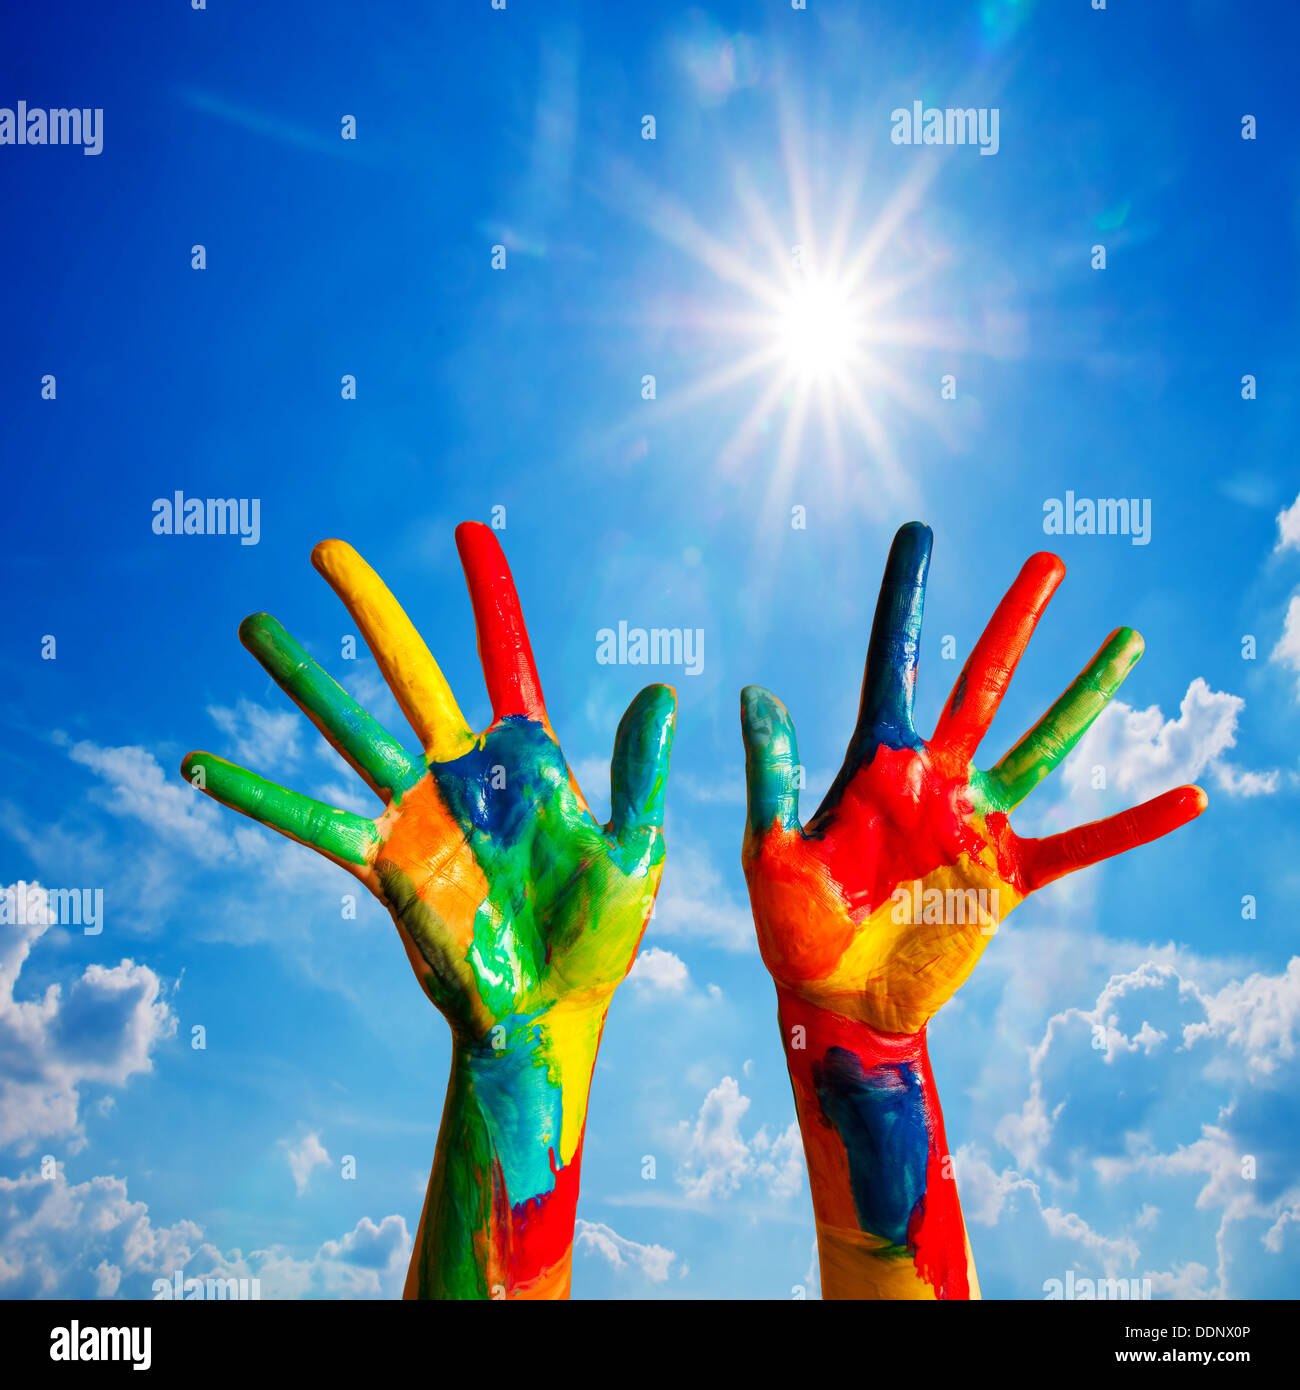 Painted hands up, colorful fun - creativity / happiness / diversity concept. - Stock Image